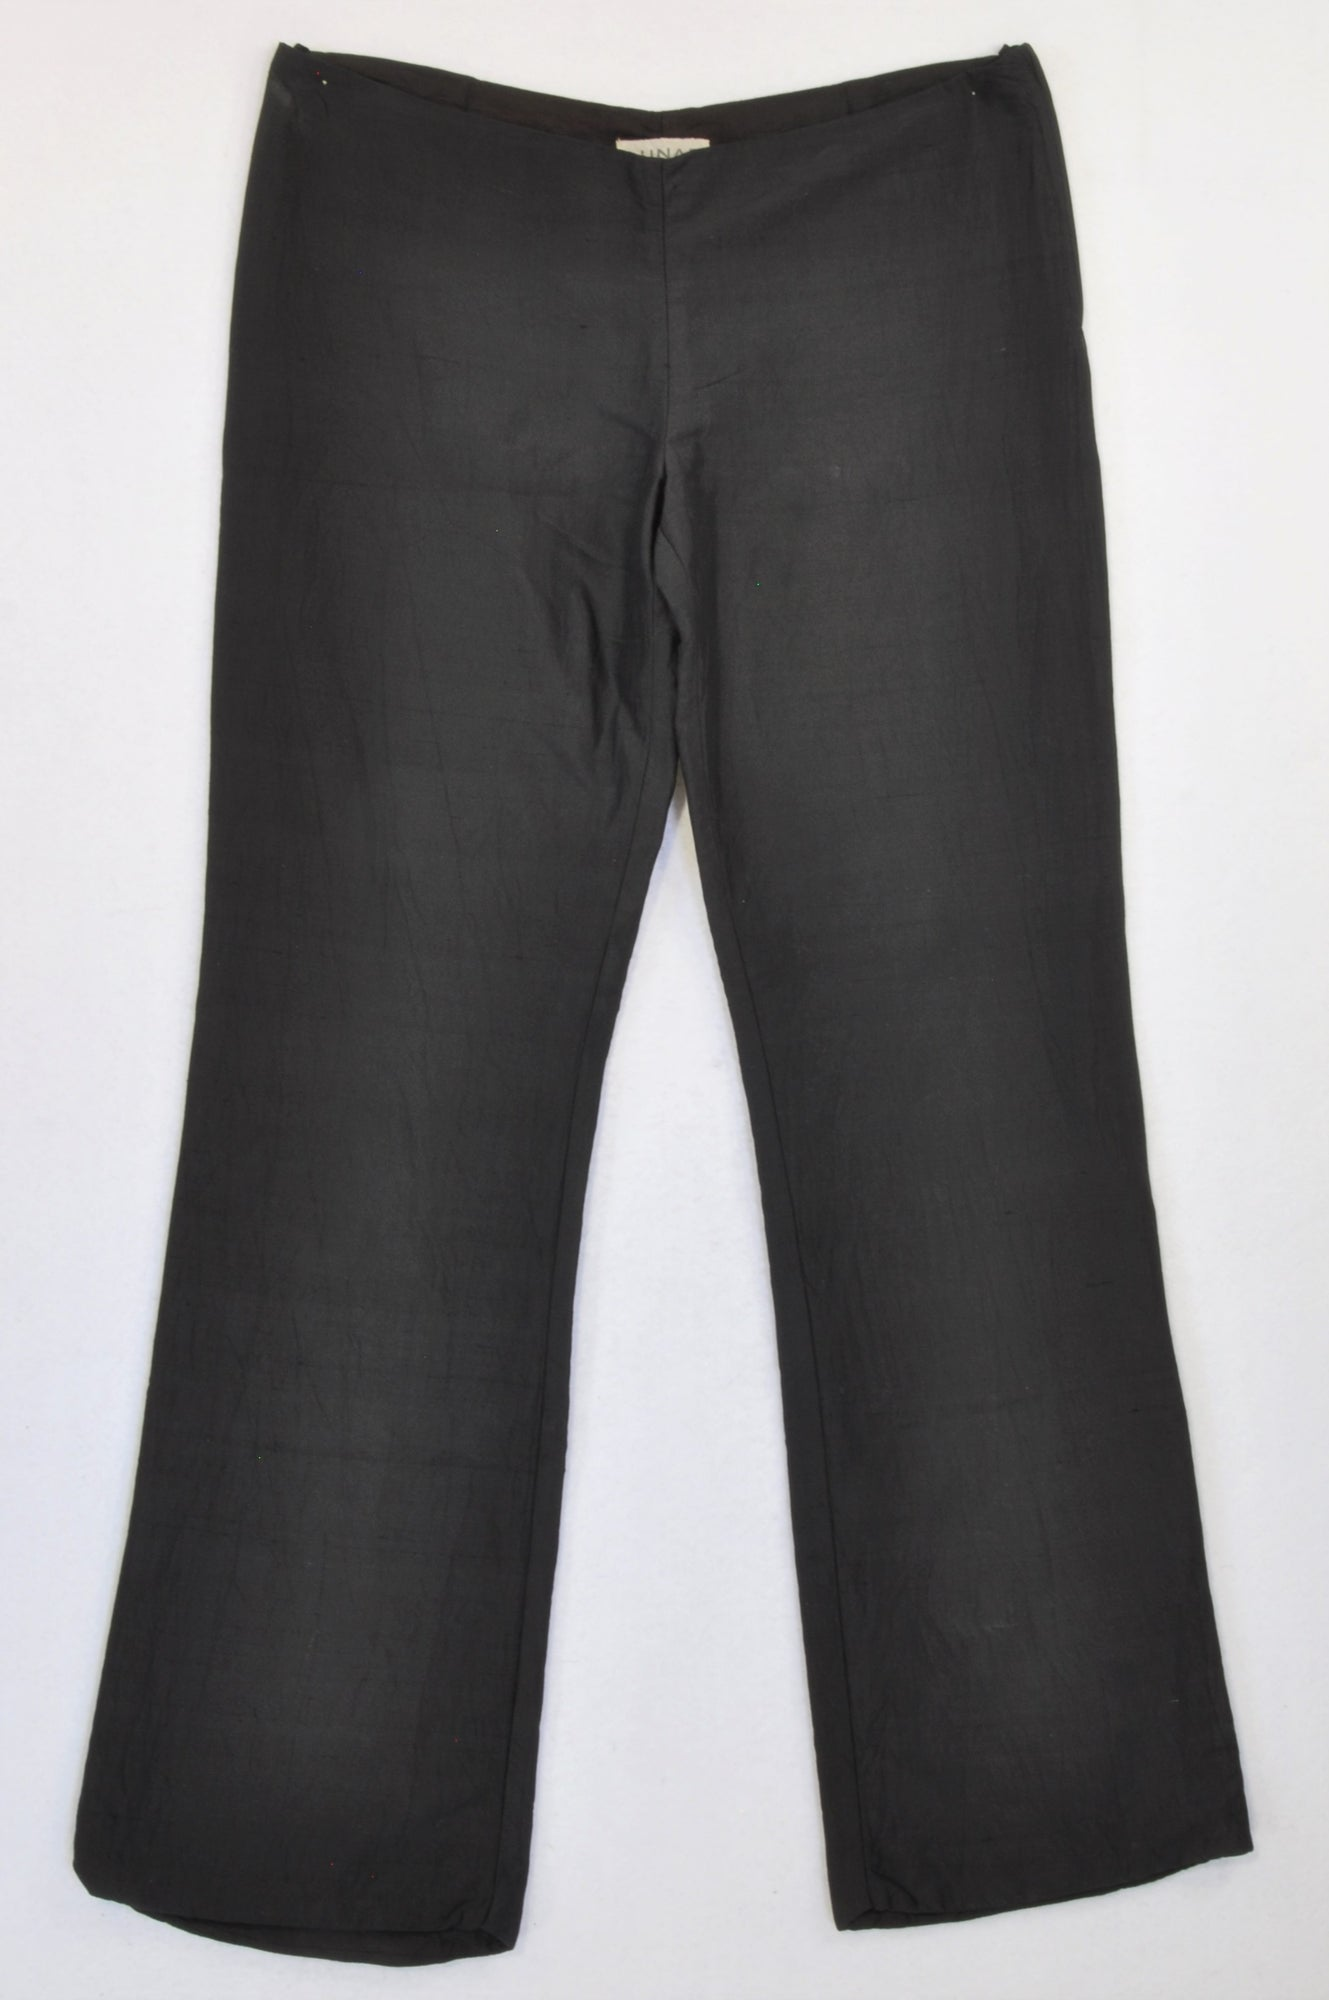 Lunar Clothing Black Crushed Satin Trouser Pants Women Size 10